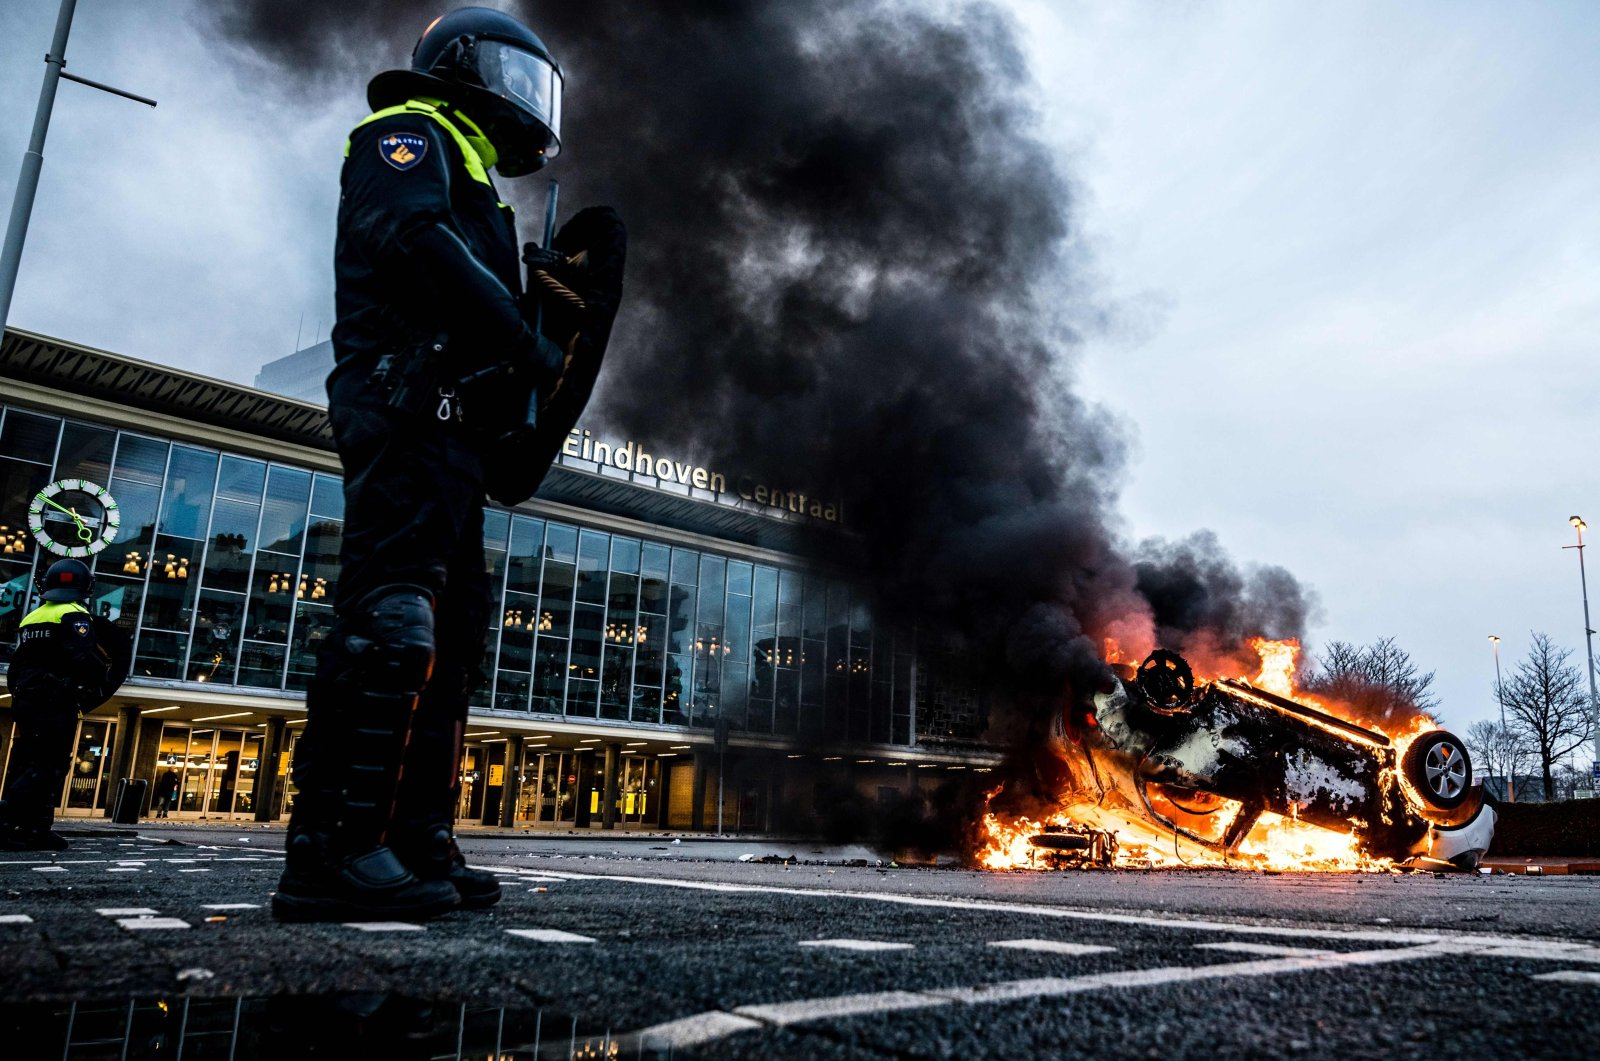 A car is set on fire in front of the train station after a rally by several hundreds of people against the coronavirus policies, in Eindhoven, the Netherlands, Jan. 24, 2021. (AFP Photo)